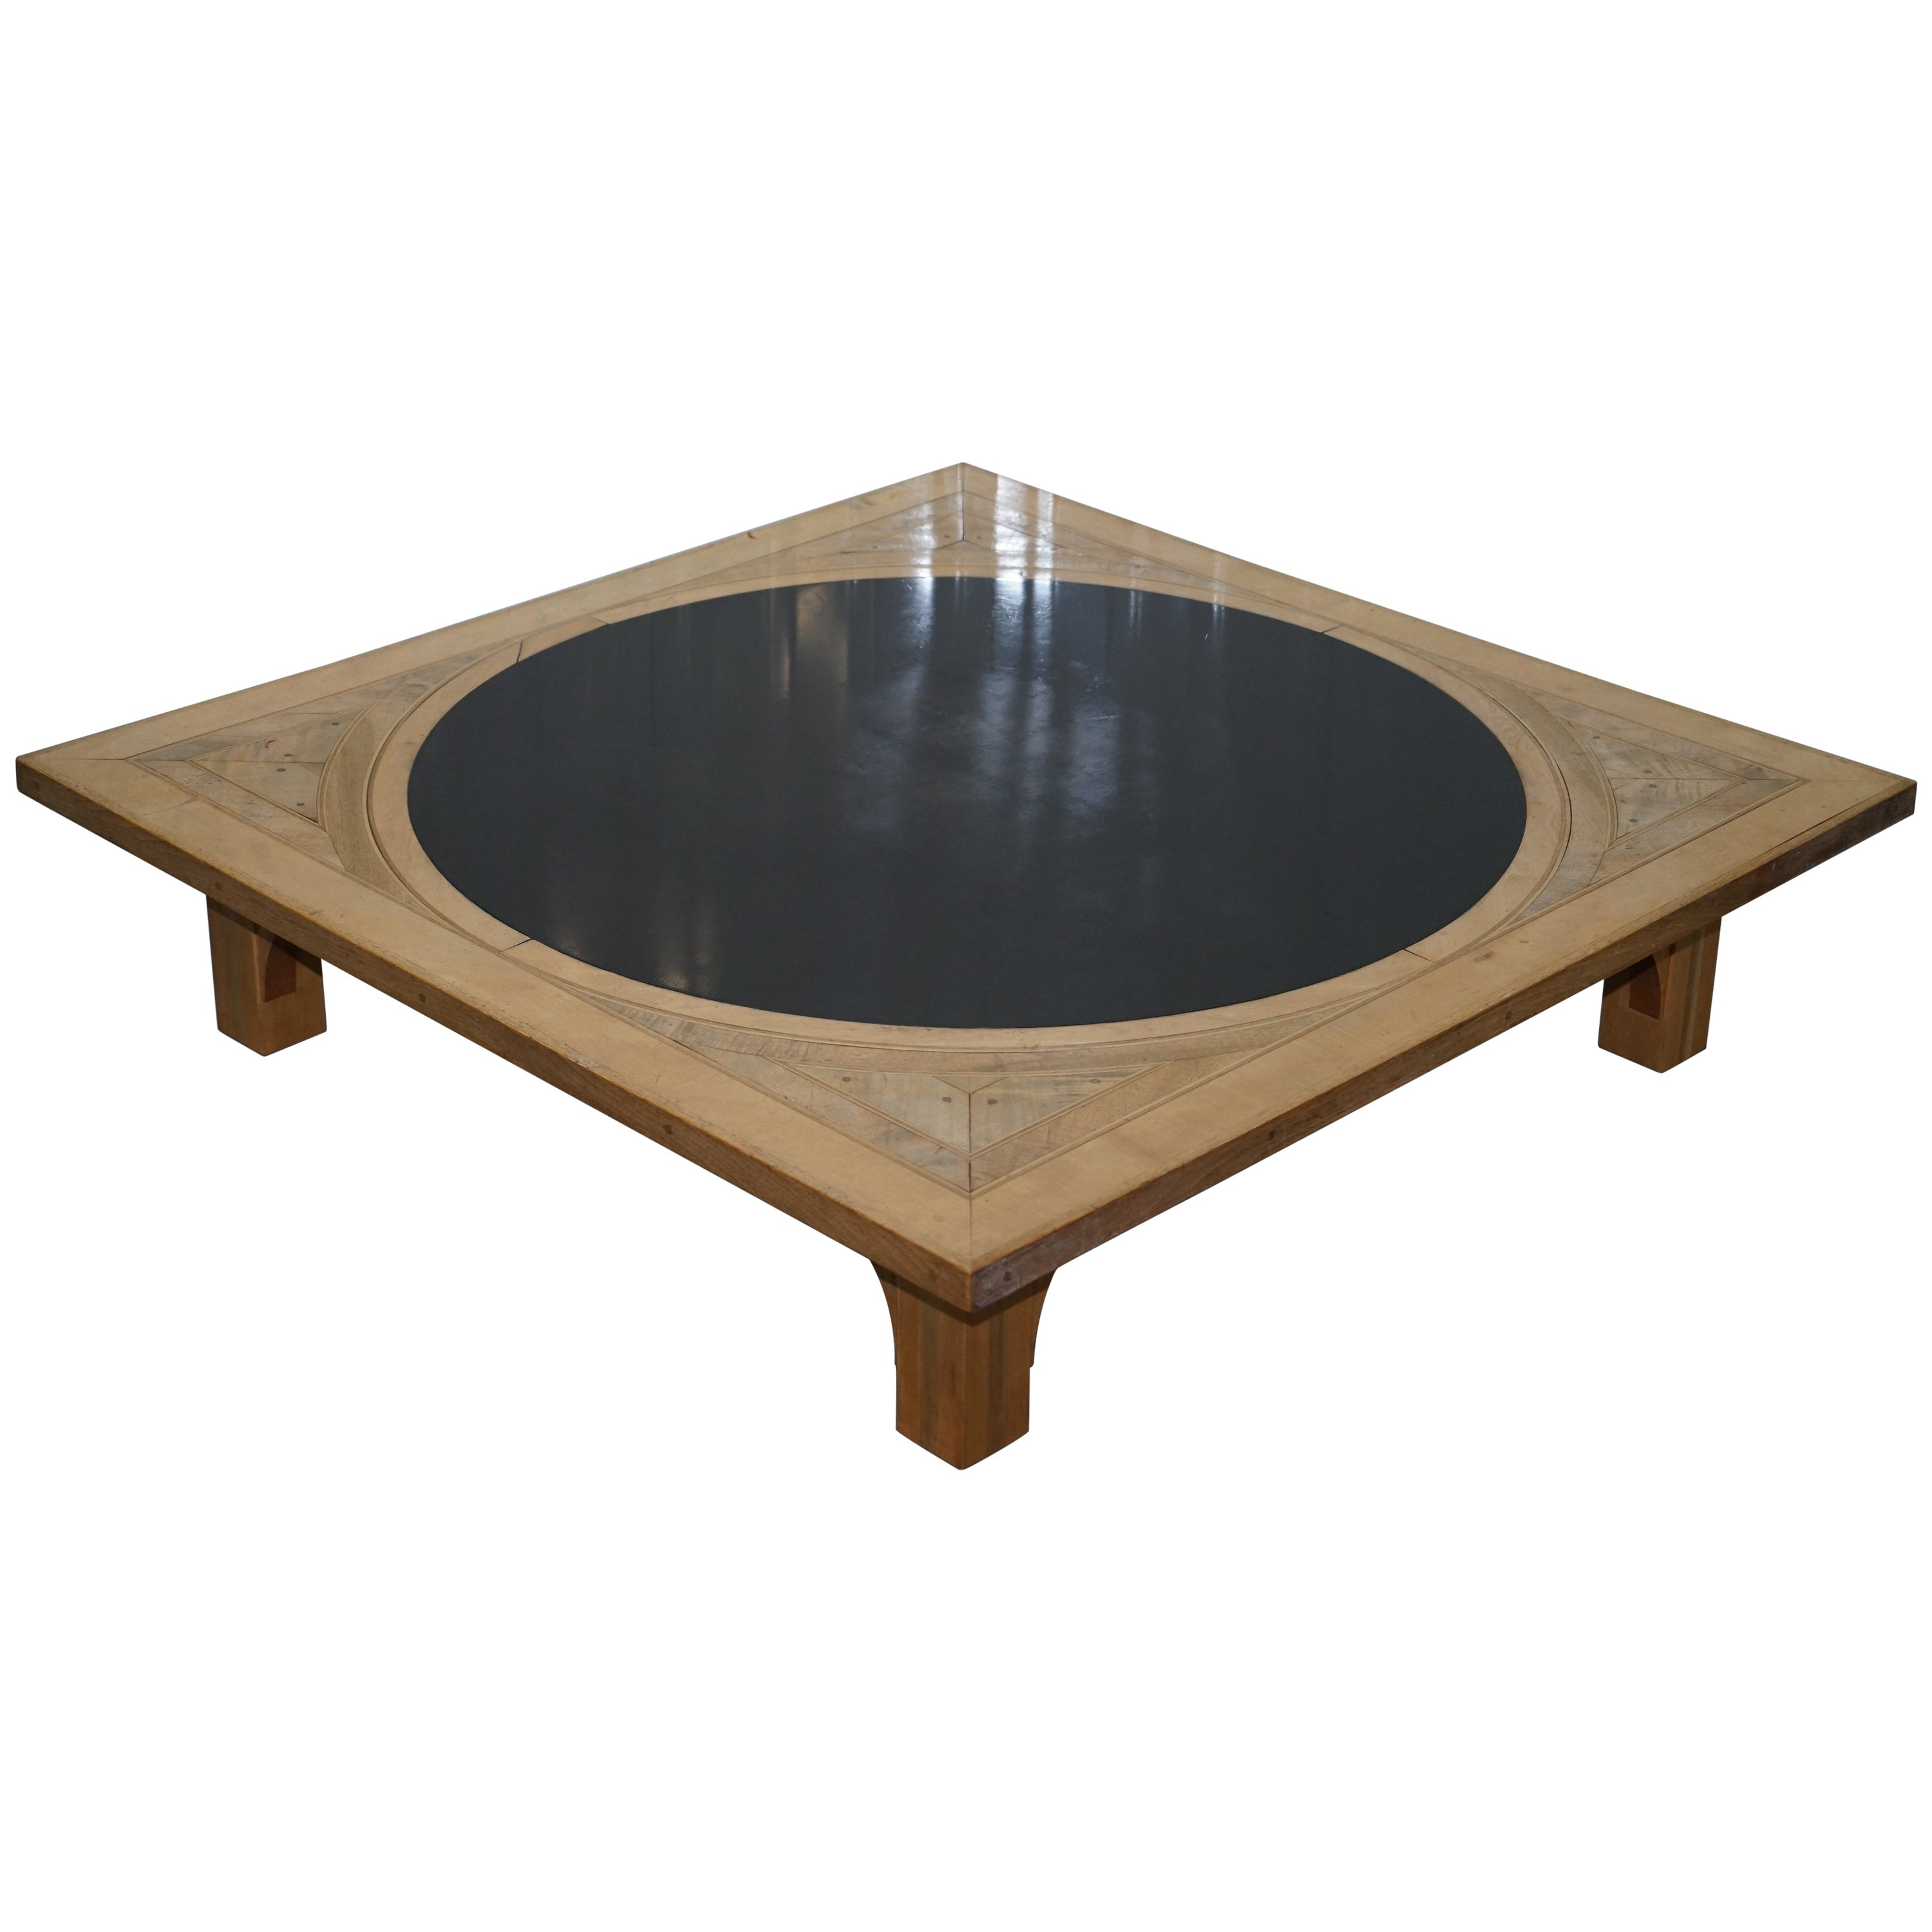 Solid Timber Coffee Table Rare Huge Solid Oak With Round Marble Centre Parquetry Inlaid Coffee Low Table